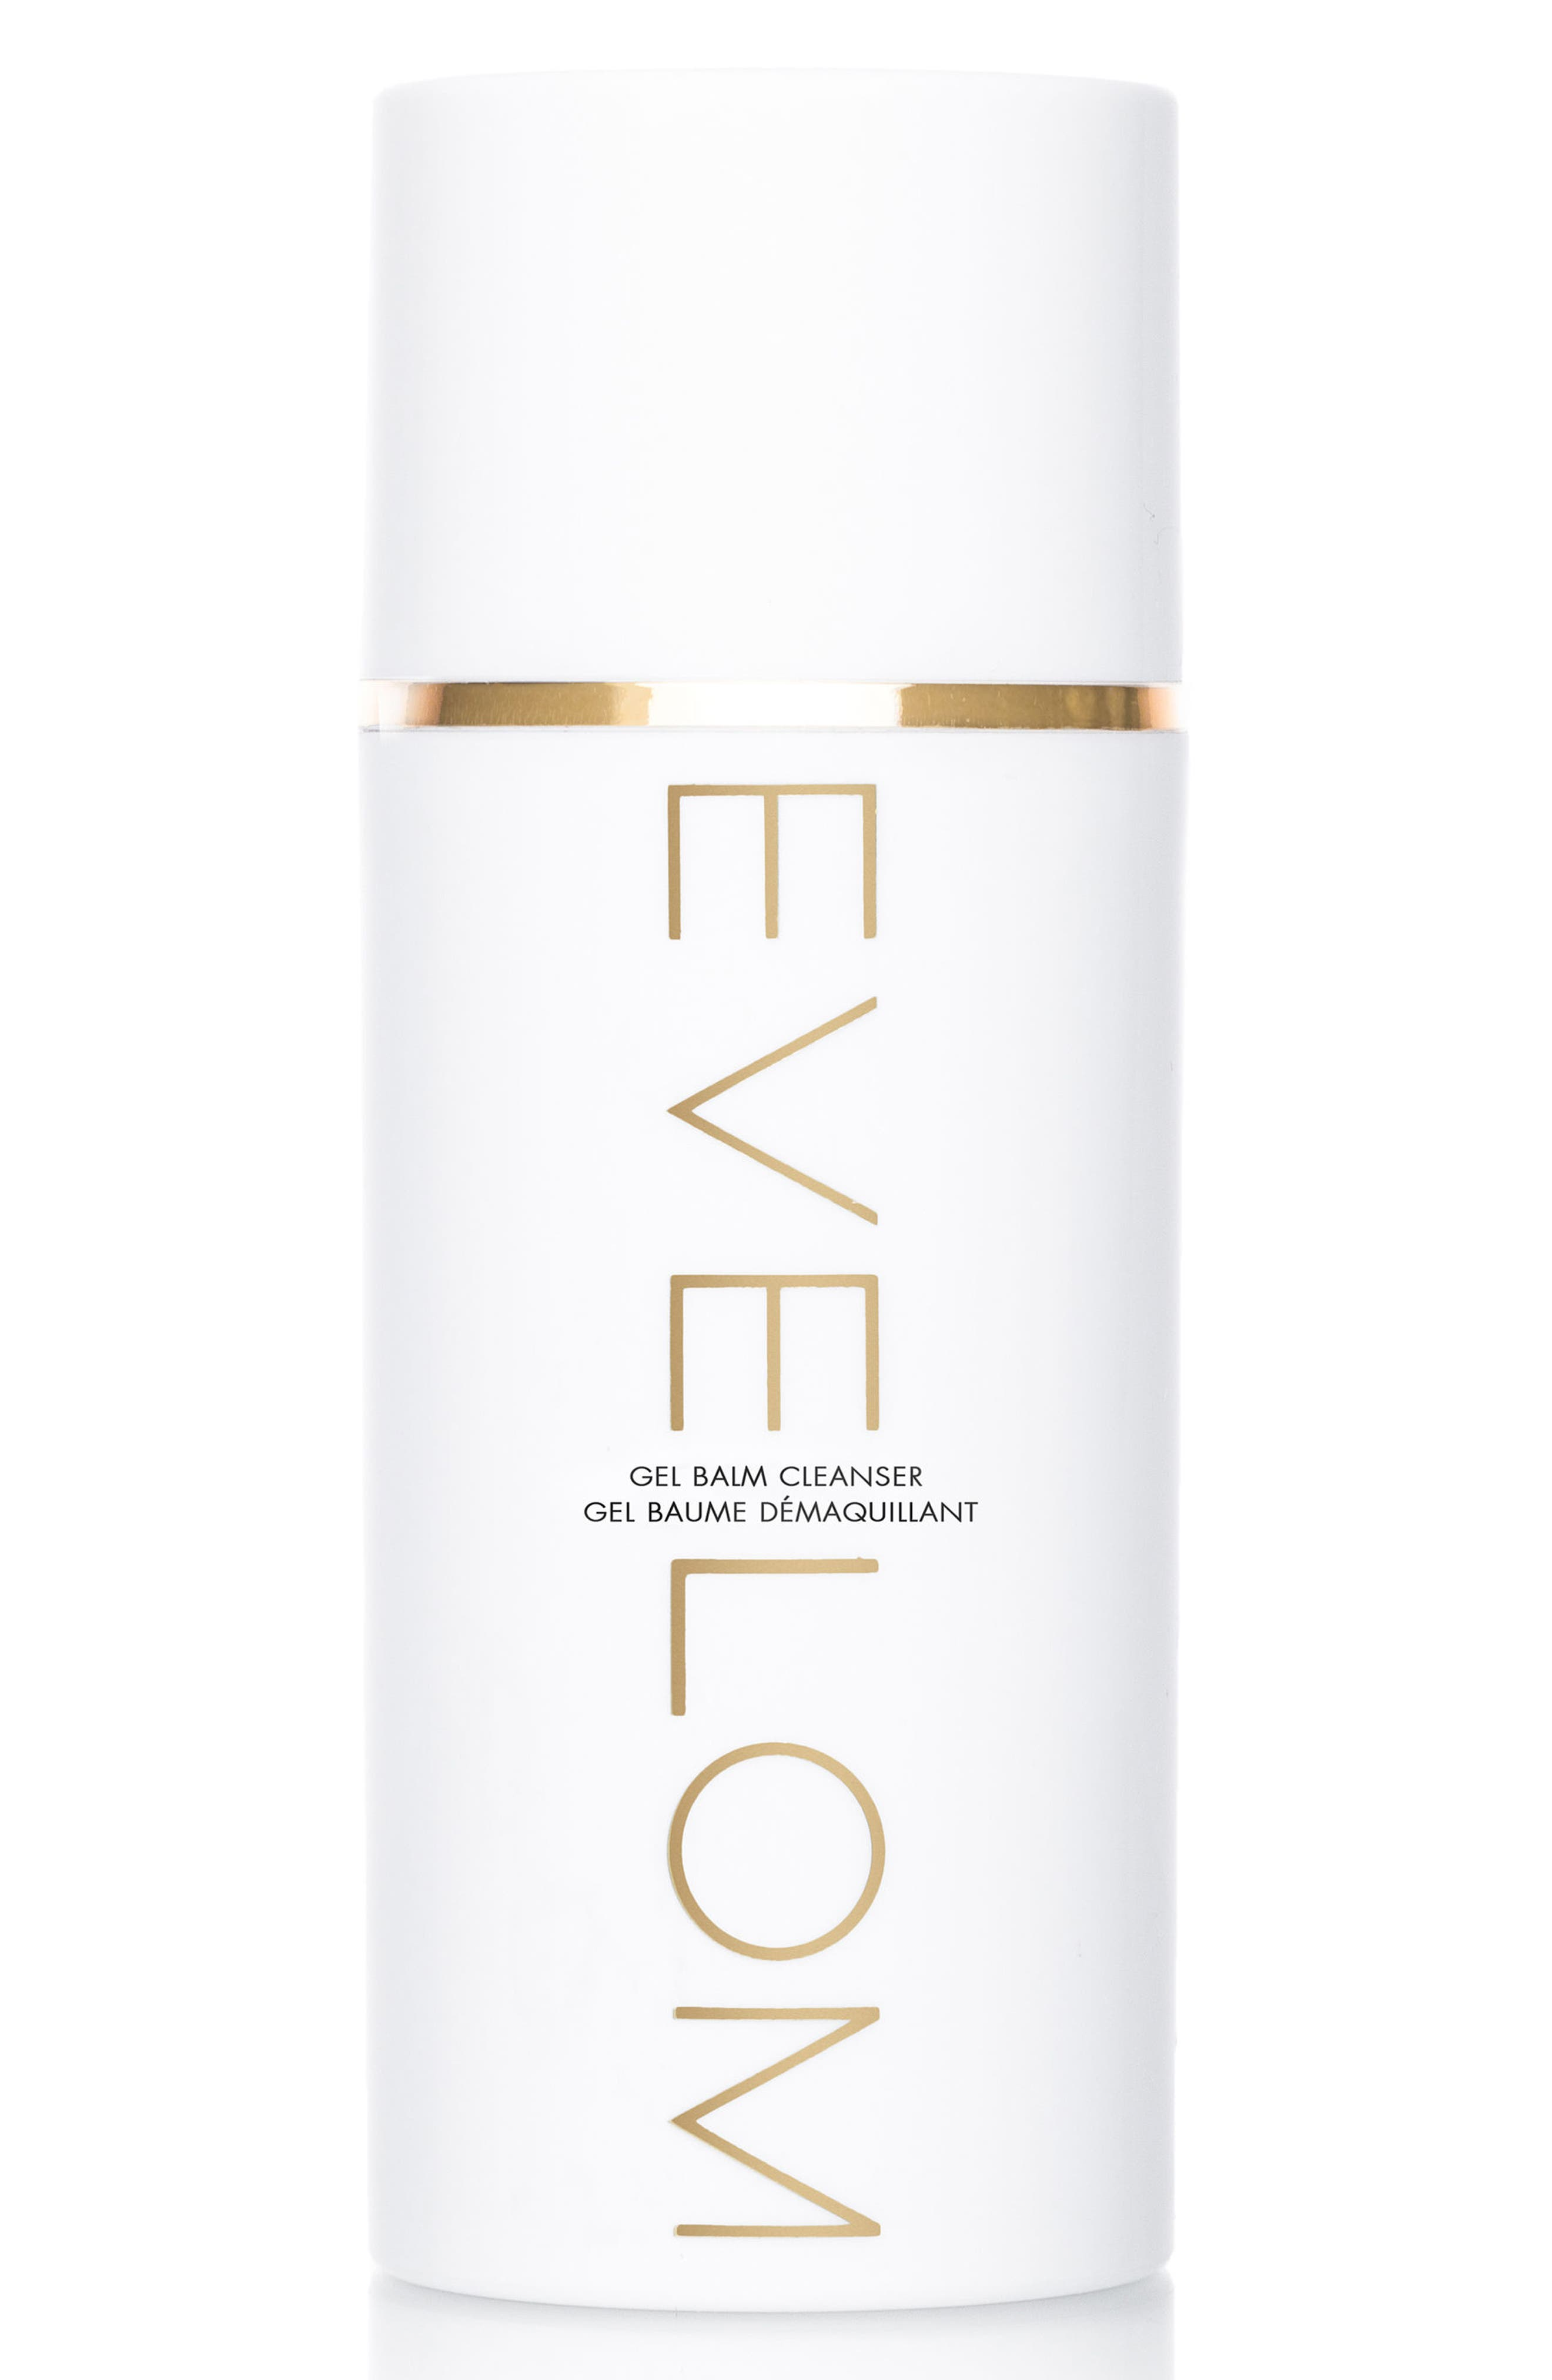 Alternate Image 1 Selected - SPACE.NK.apothecary EVE LOM Gel Balm Cleanser